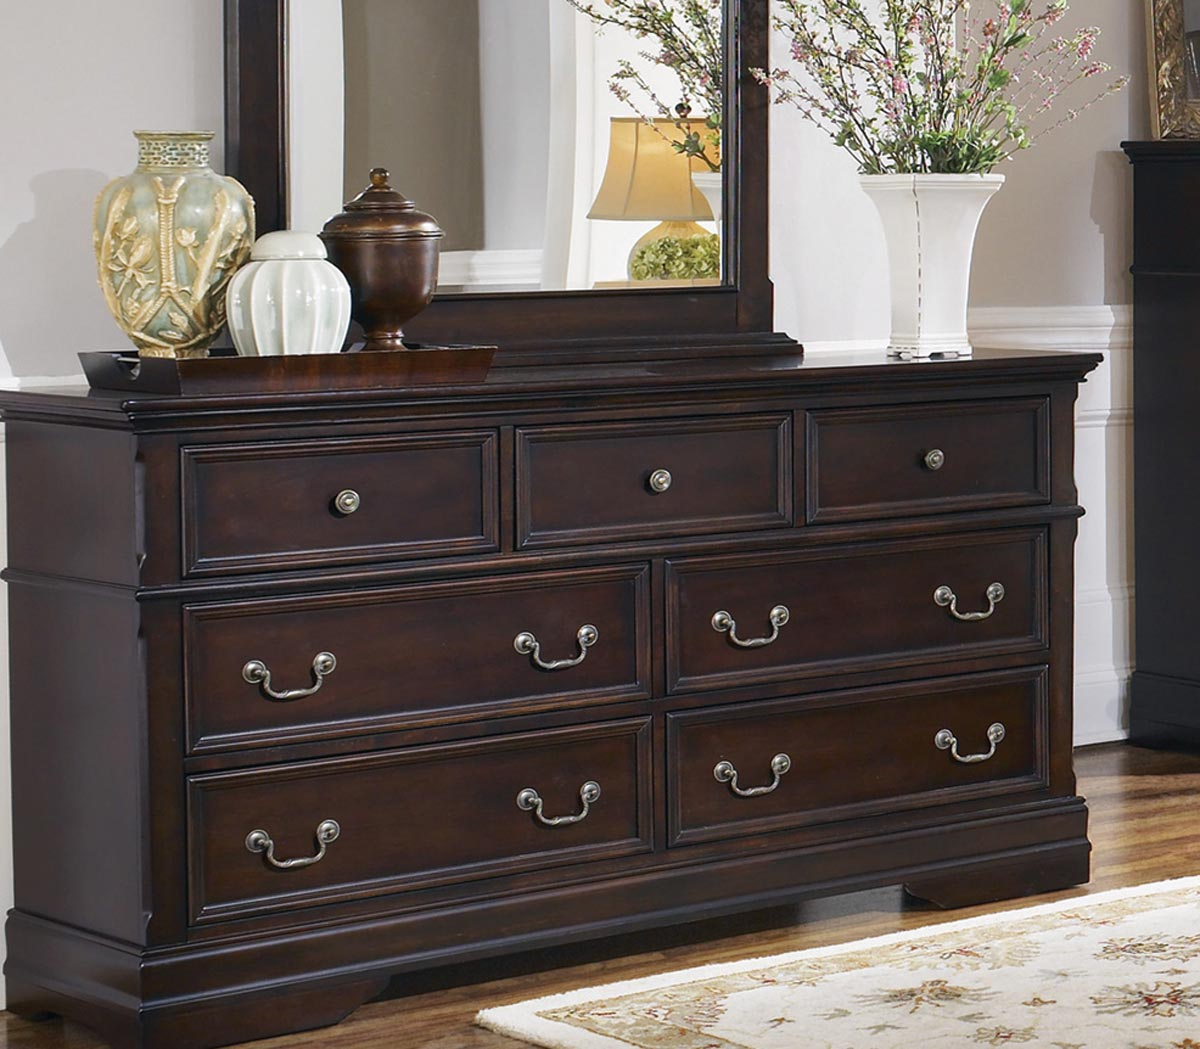 Coaster Cambridge Dresser - Dark Cherry